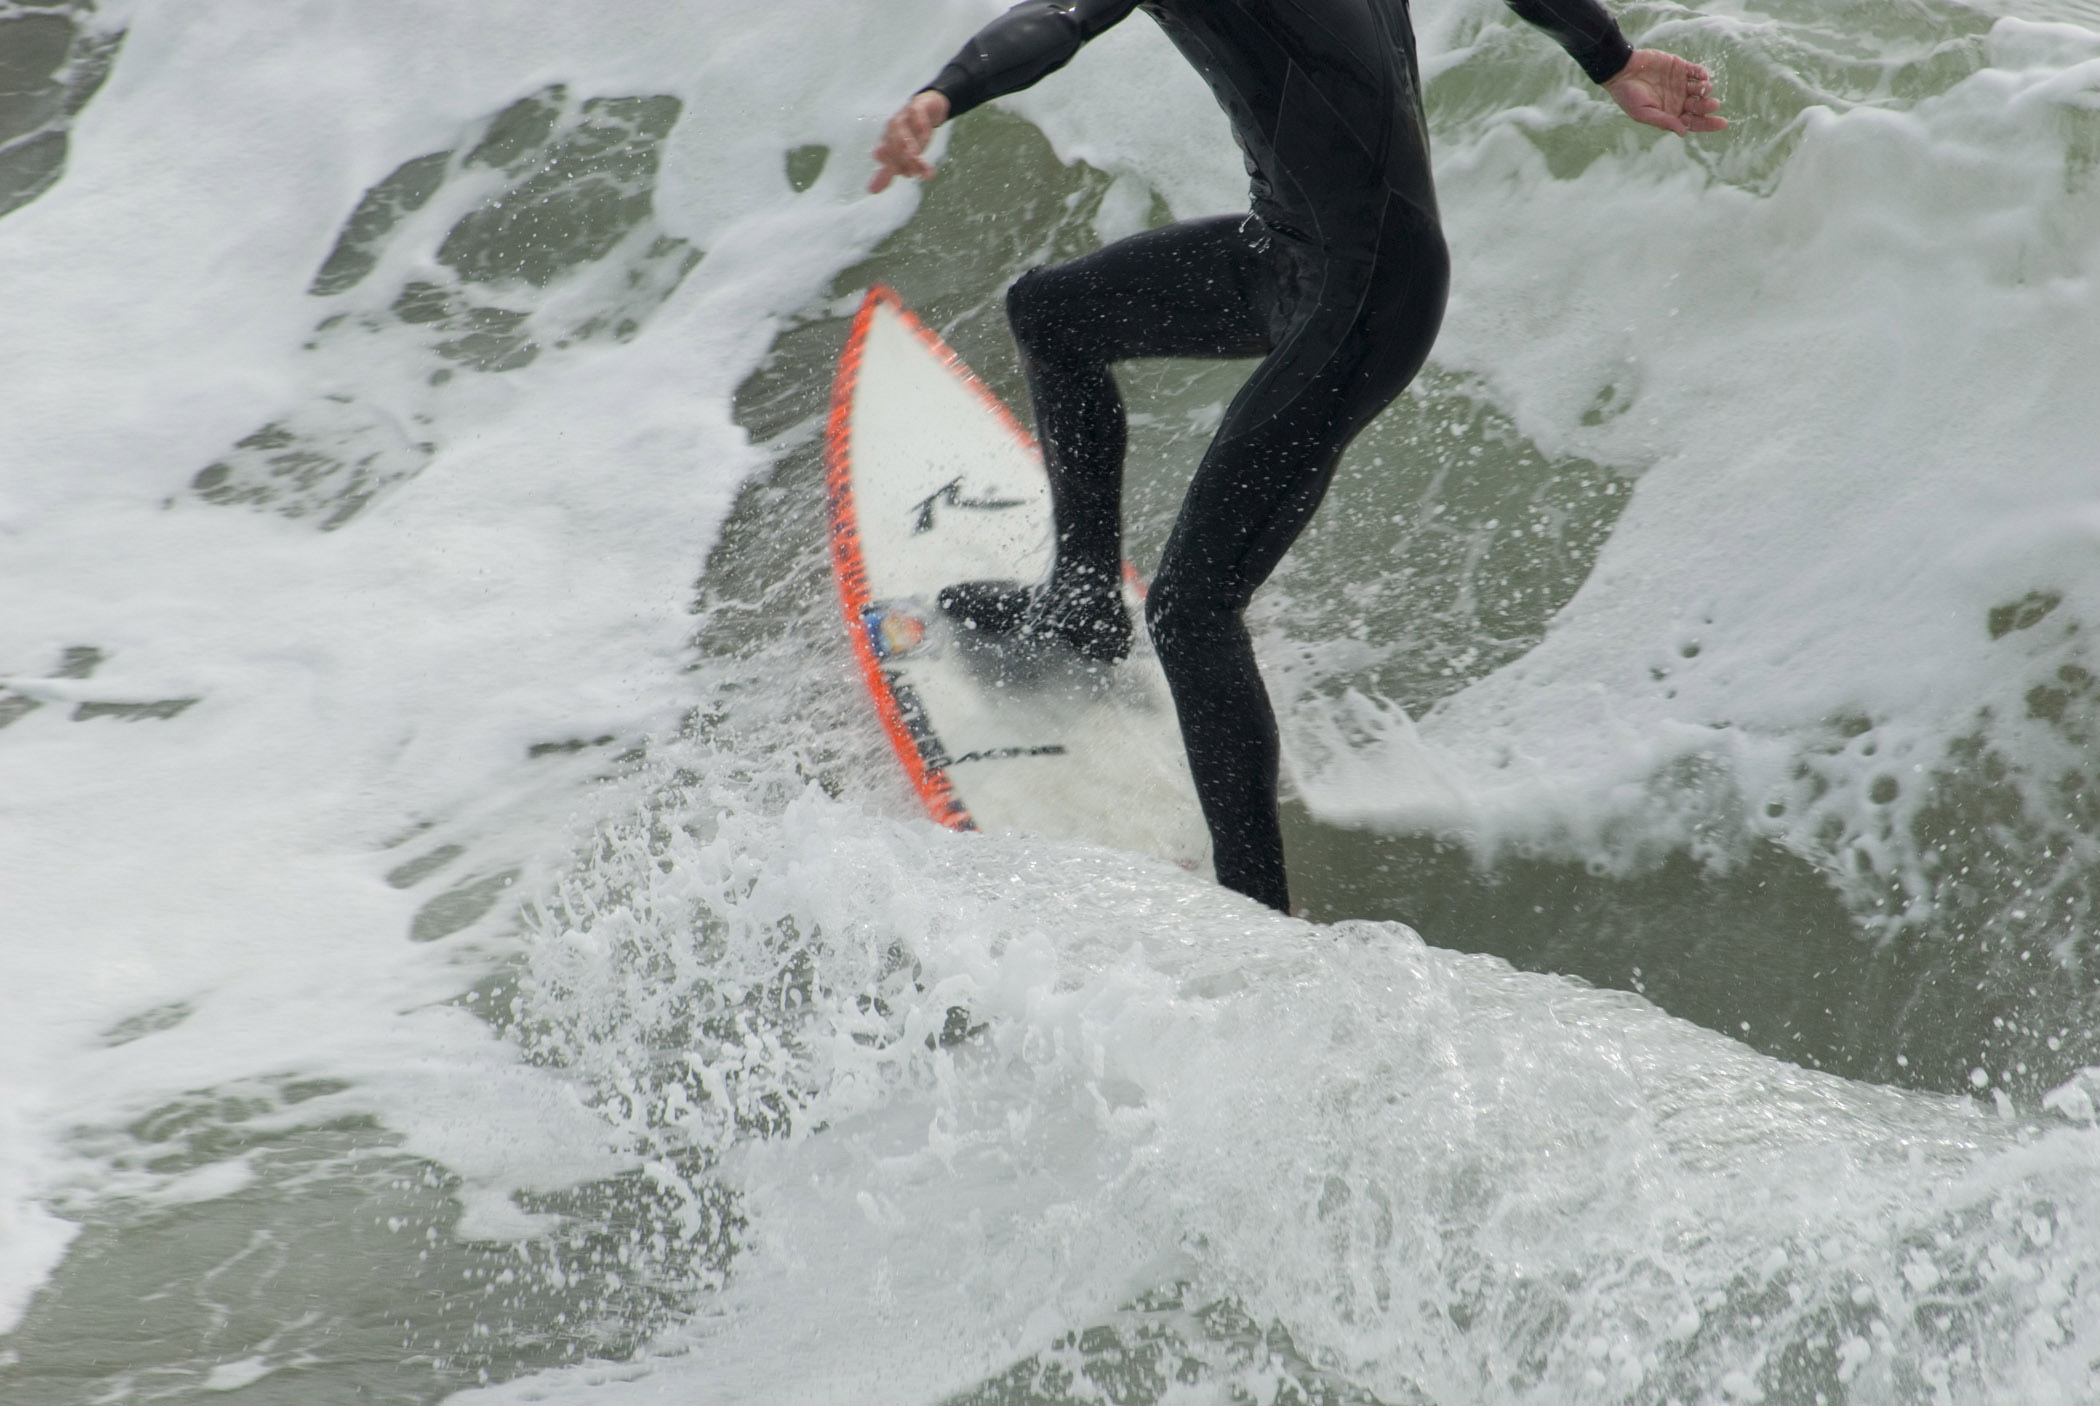 California surfer showing the legs of a person in a wetsuit balancing on a surfboard in a breaking wave with white surf